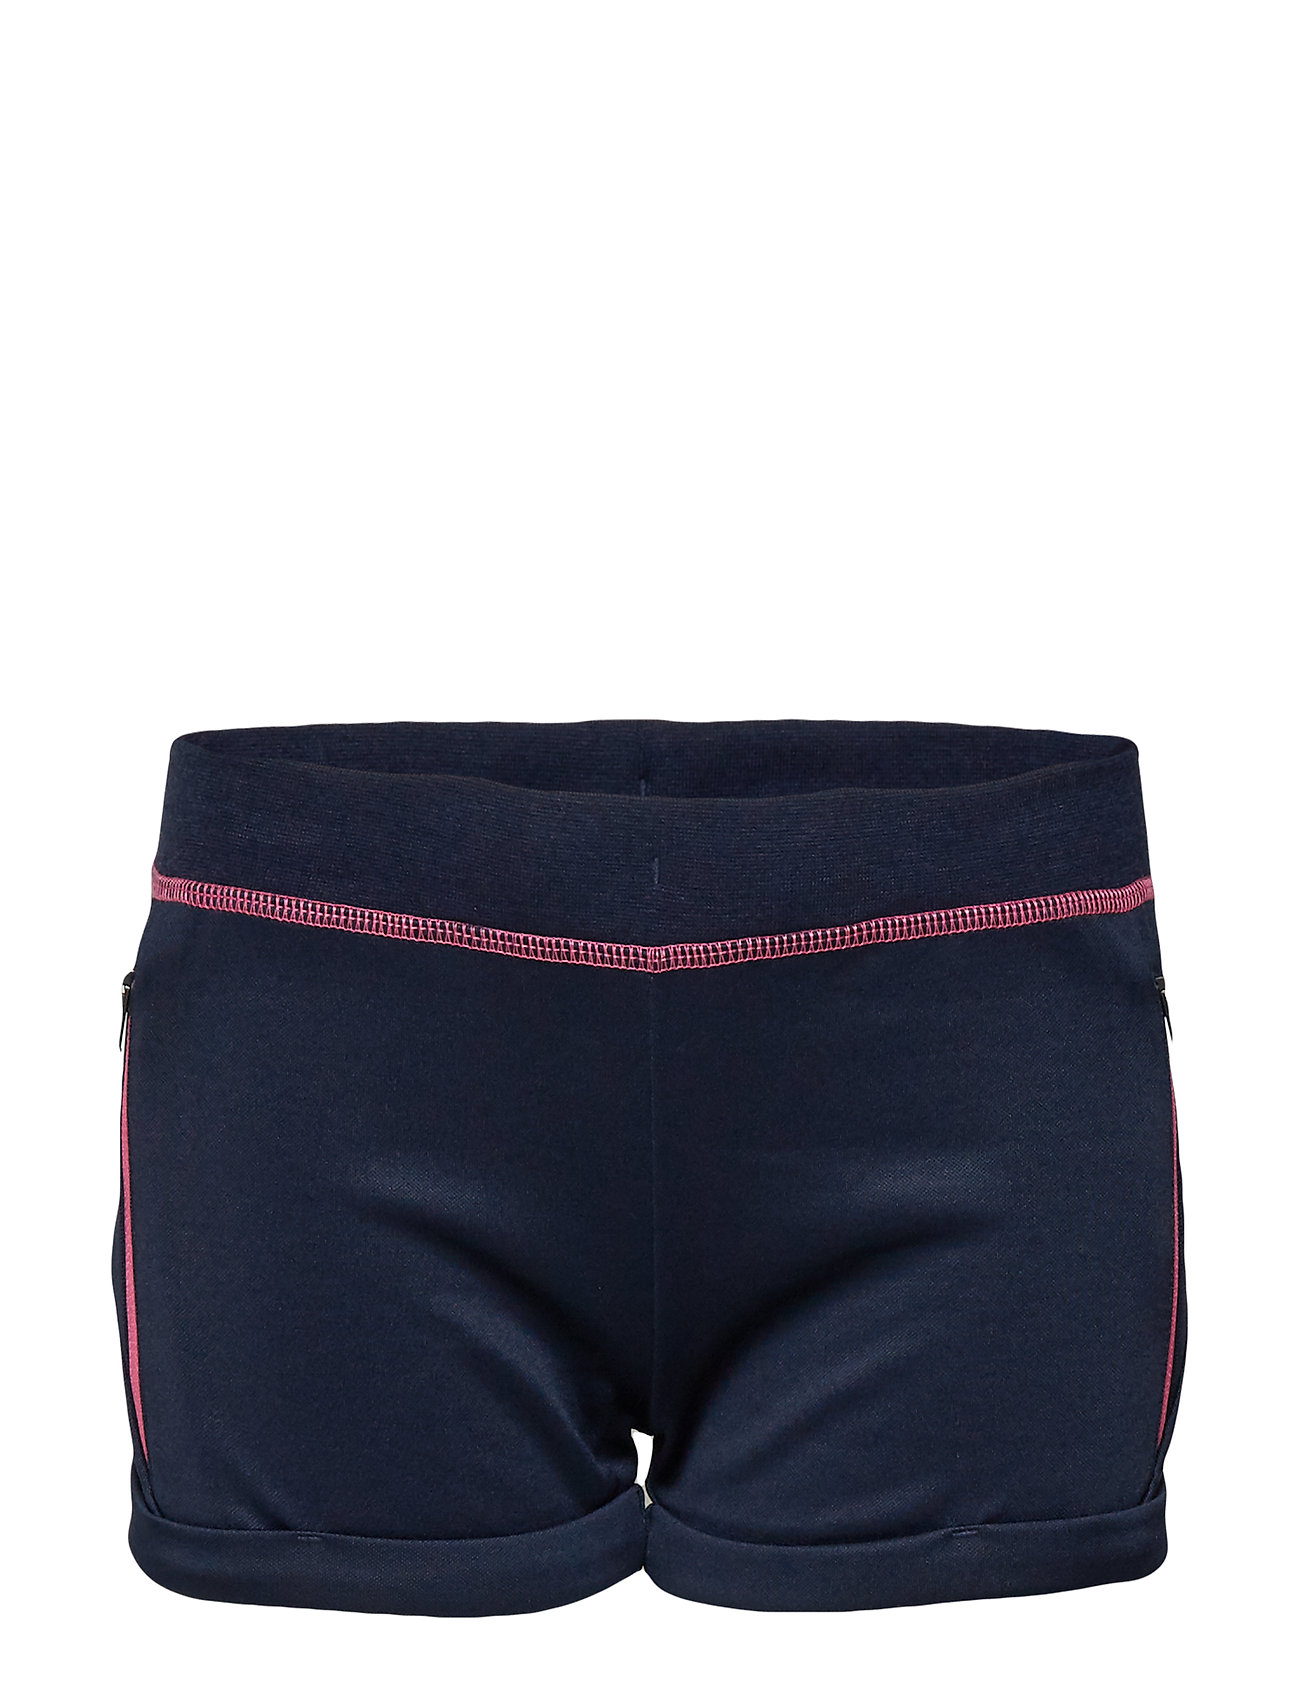 Lego wear LWPAOLA 322 - SHORTS - DARK NAVY